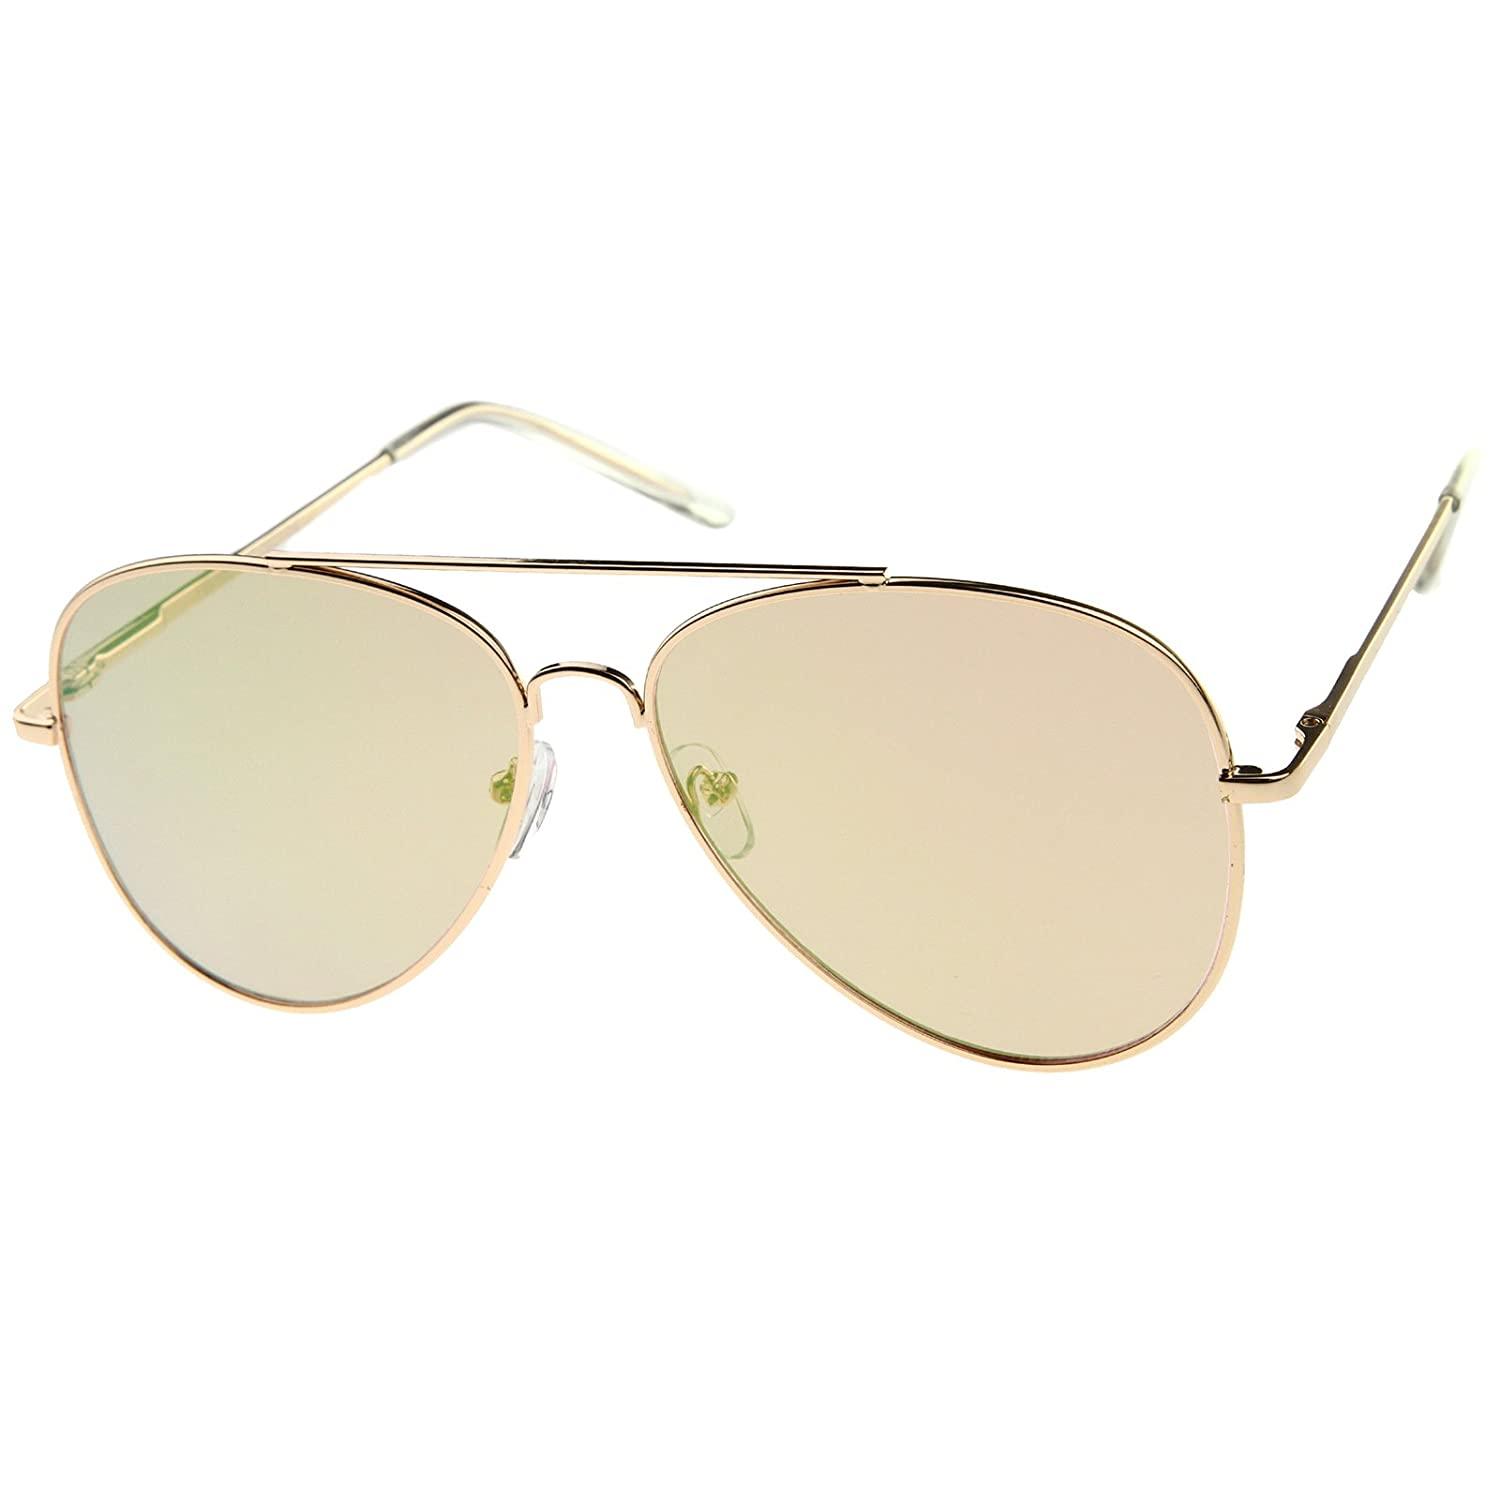 a6dd80e1f2 Amazon.com  Large Metal Rose Gold Frame Pink Mirror Flat Lens Aviator  Sunglasses 60mm (Gold Pink Mirror)  Clothing